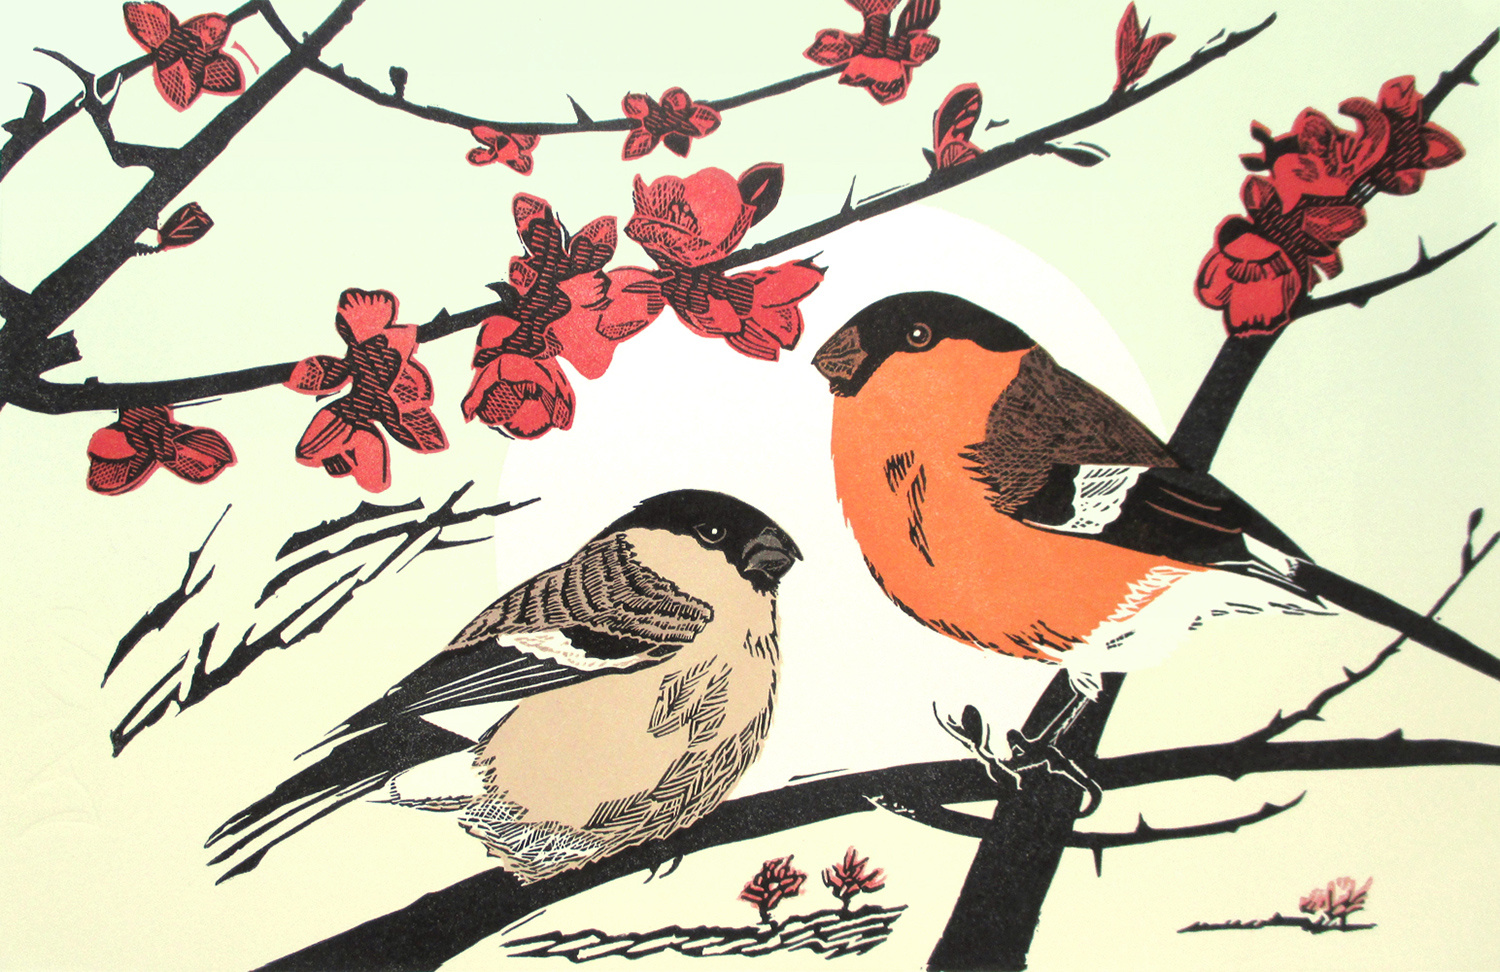 Bullfinches by Pam Grimmond